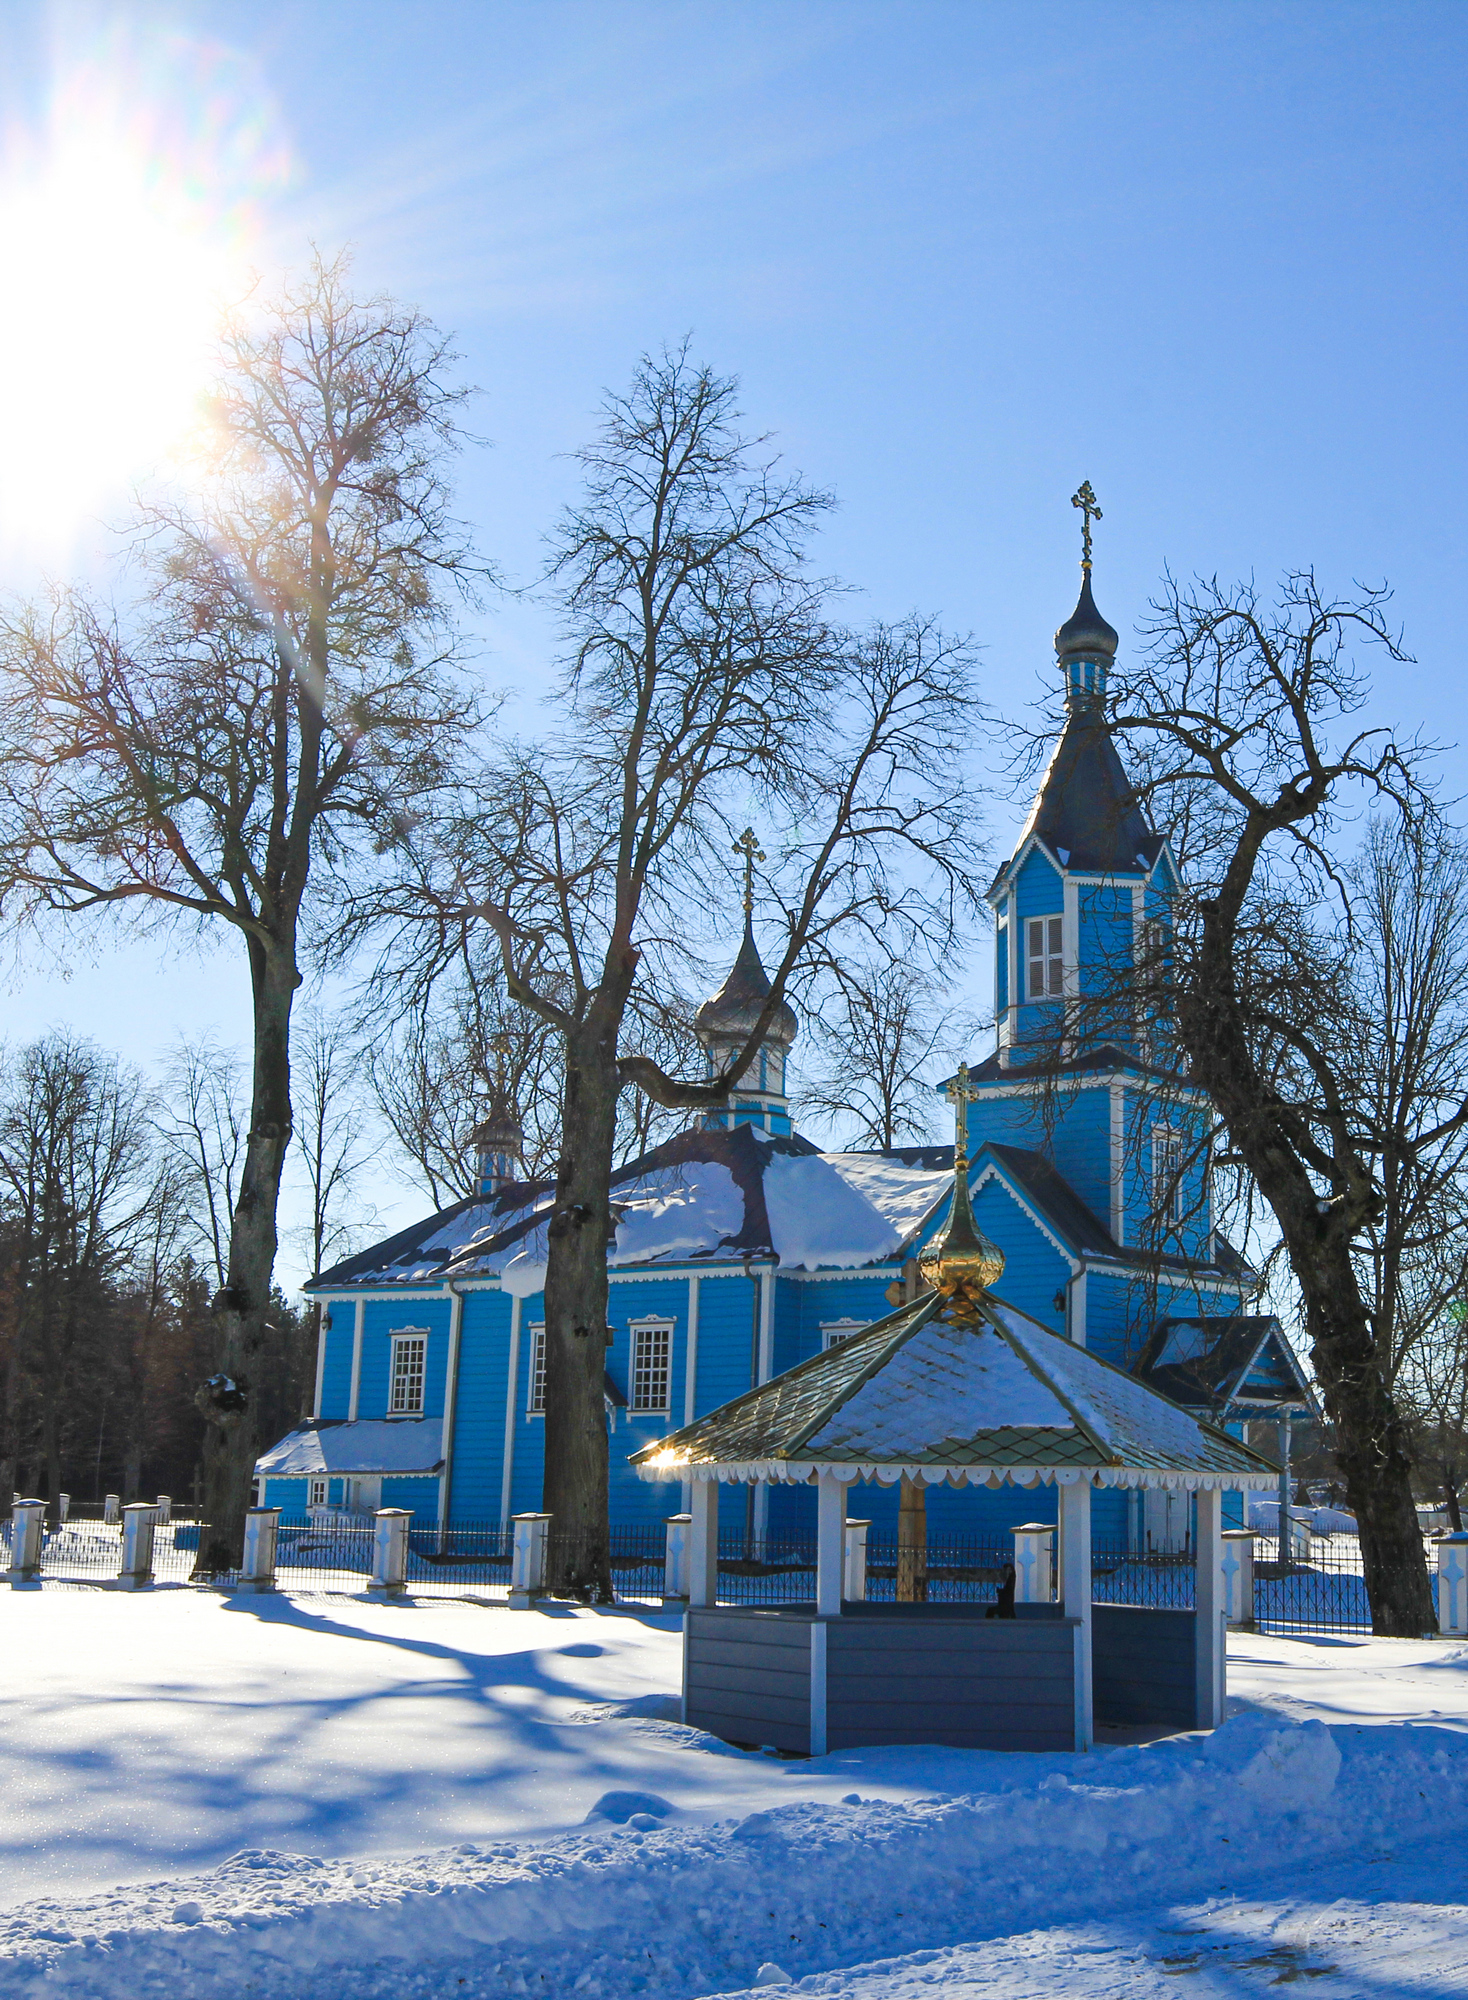 The Orthodox church in Werstok